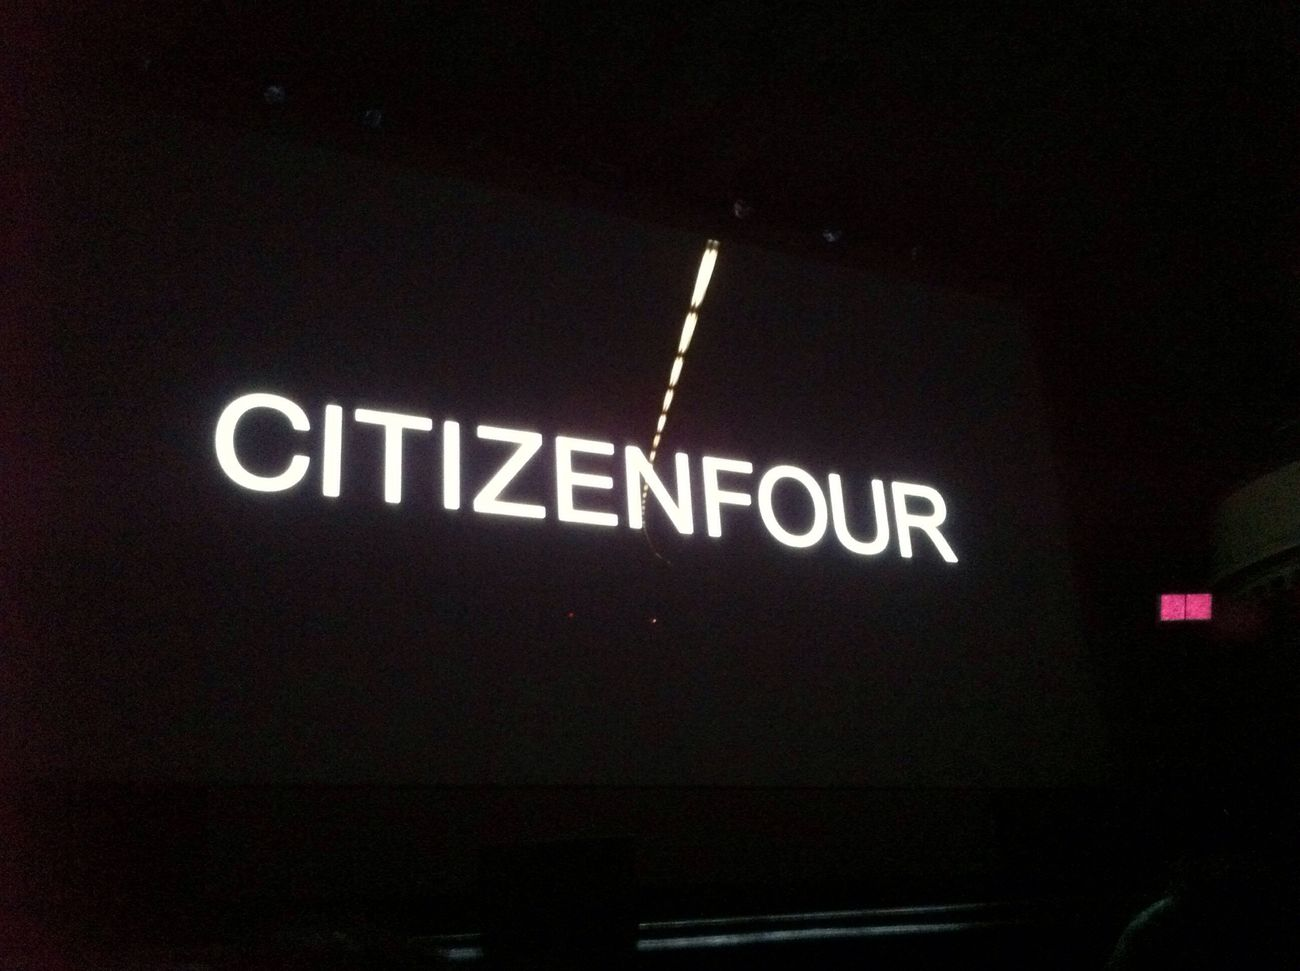 CITIZENFOUR The Human Condition Shootermag Spectator Edward Snowden Swiss Asylum Living Bold